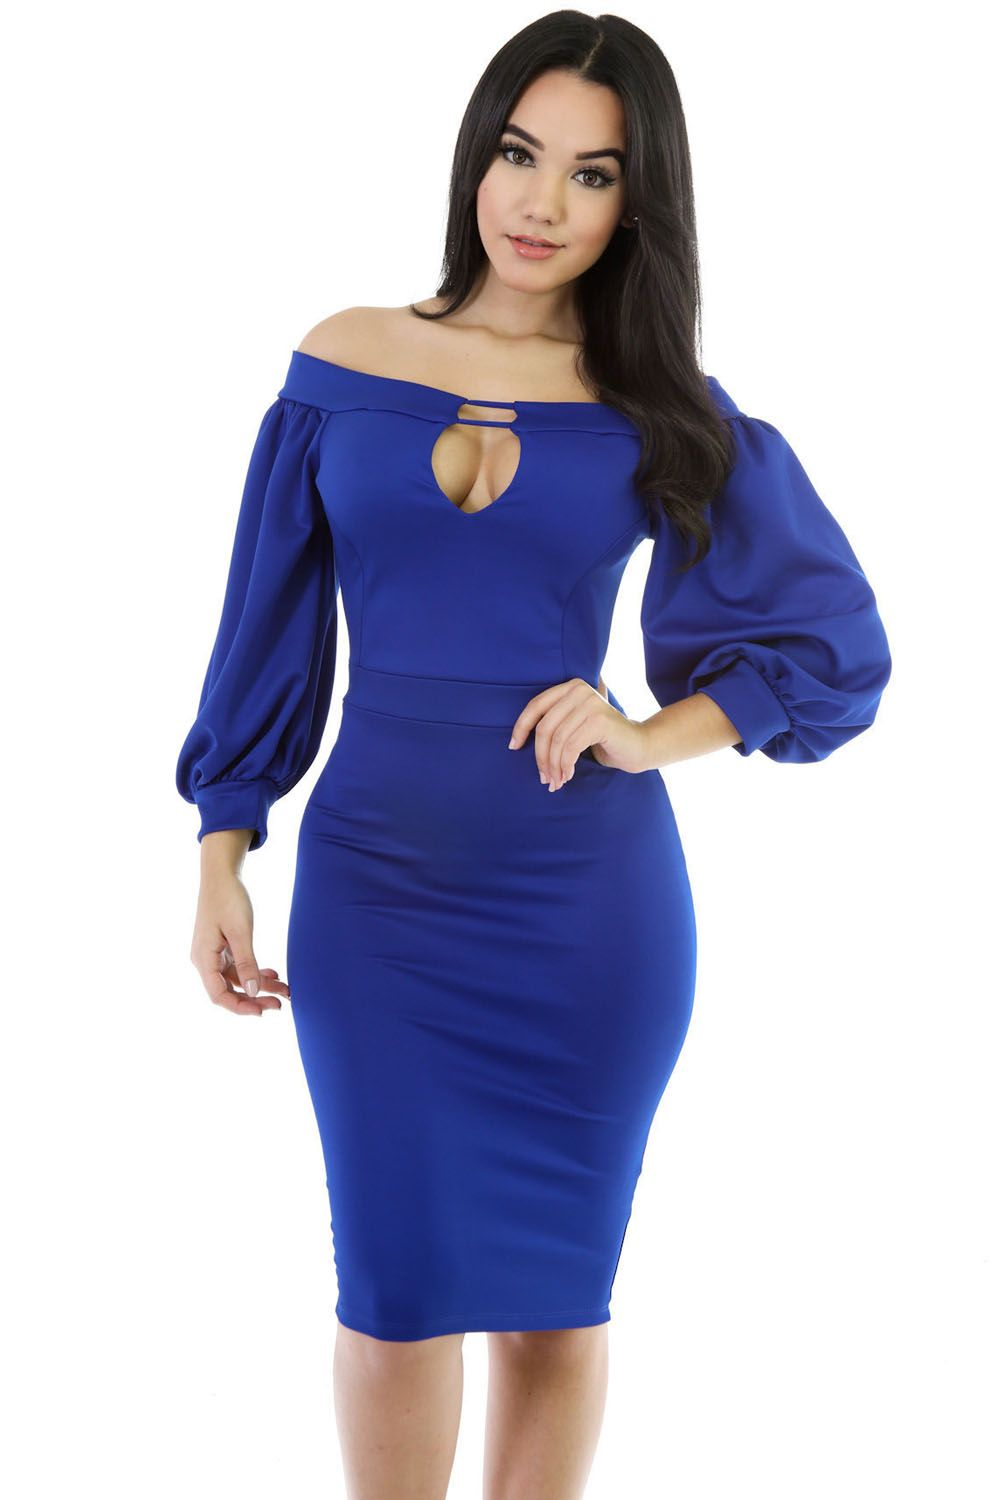 8242cc3ff392 Blue Puffs Peep Hole Off Shoulder Midi Bodycon Dress